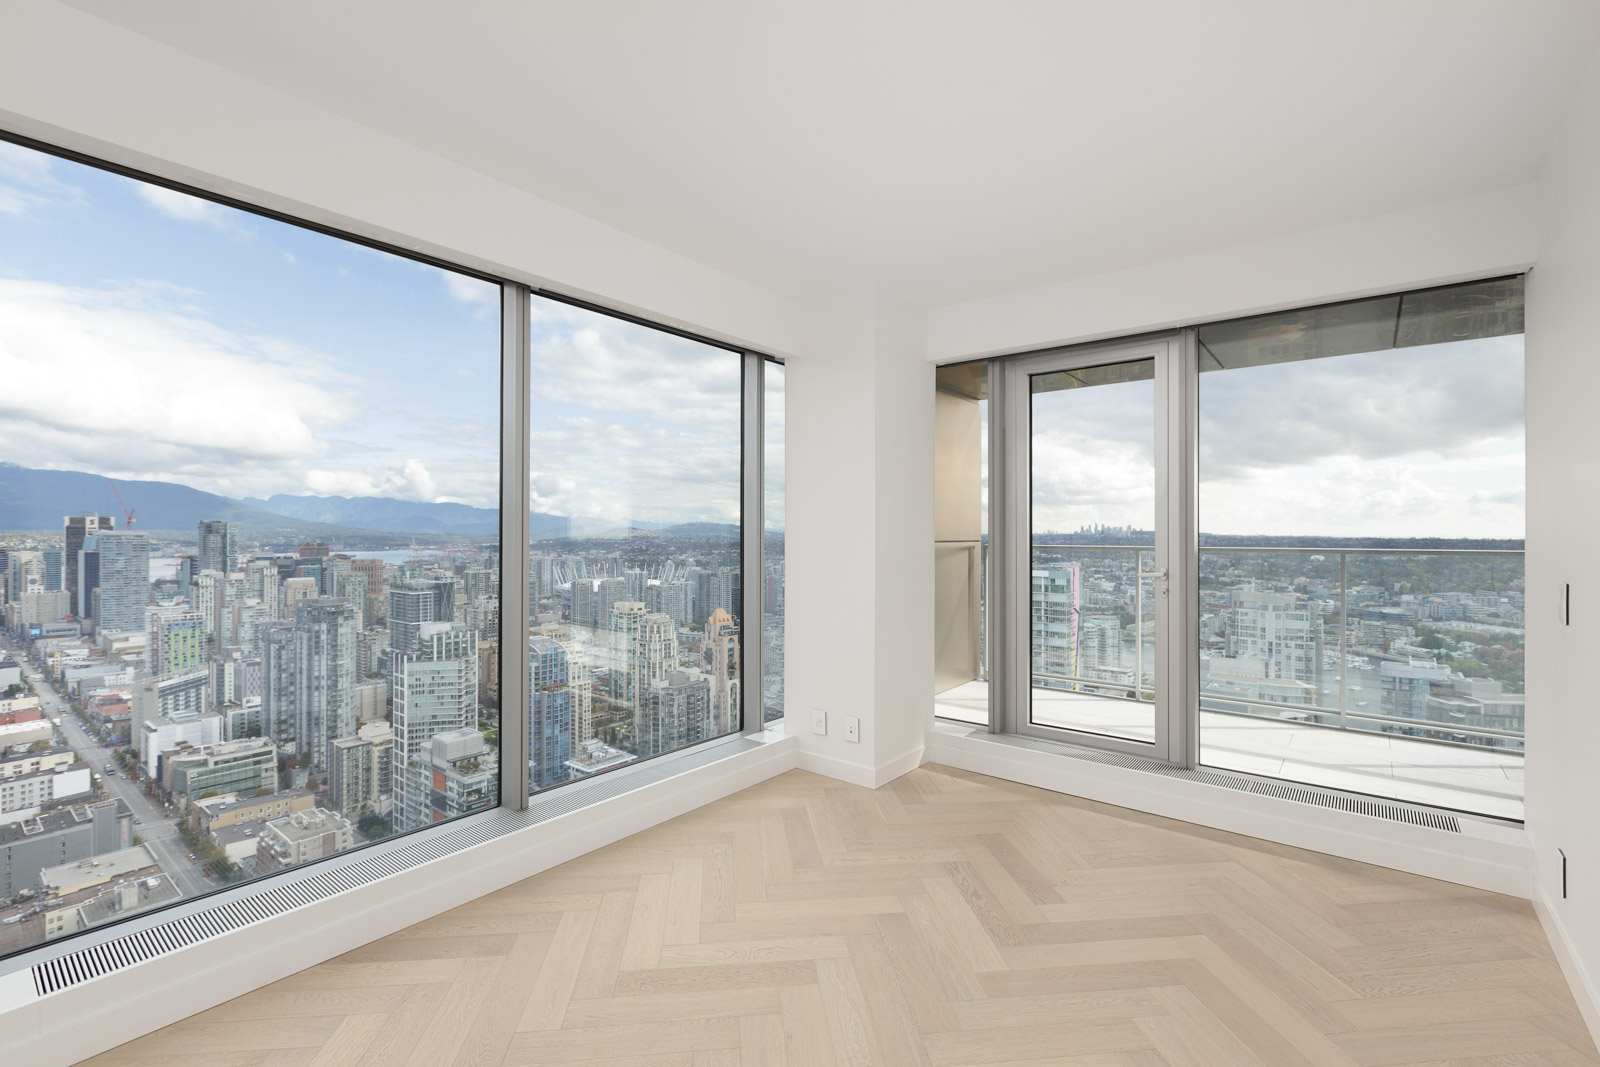 bedroom with view in upscale downtown Vancouver condo